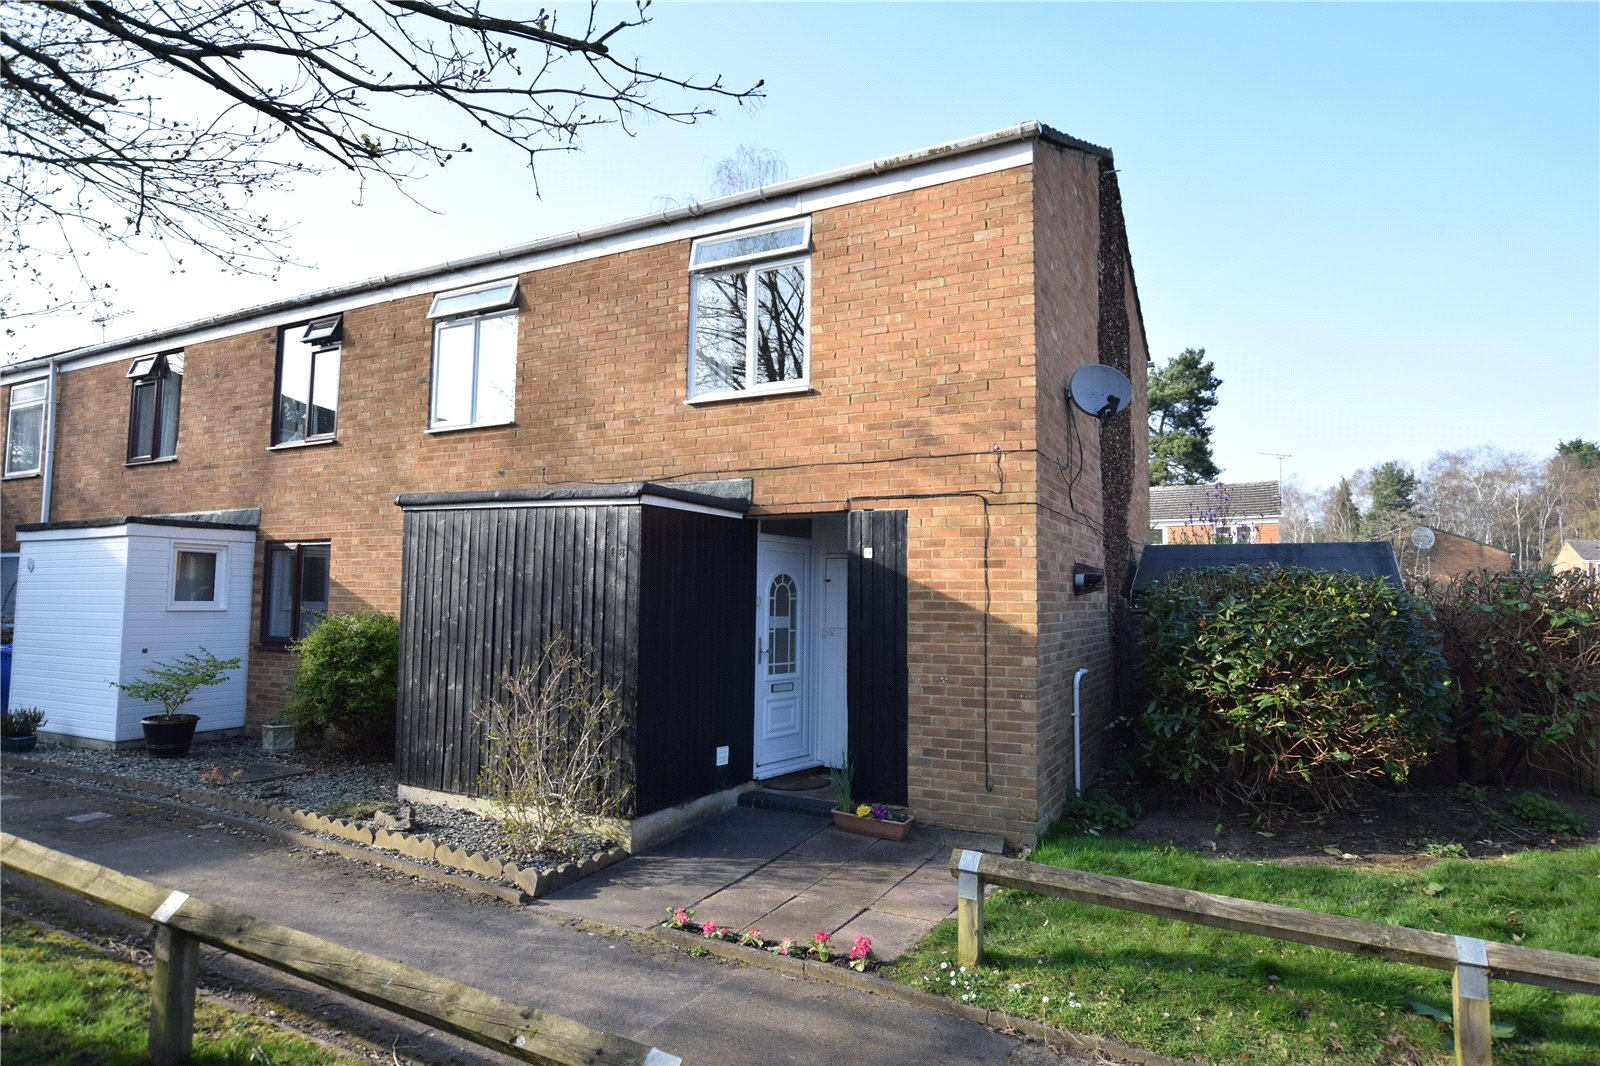 3 Bedrooms End Of Terrace House for sale in Claverdon, Bracknell, Berkshire, RG12